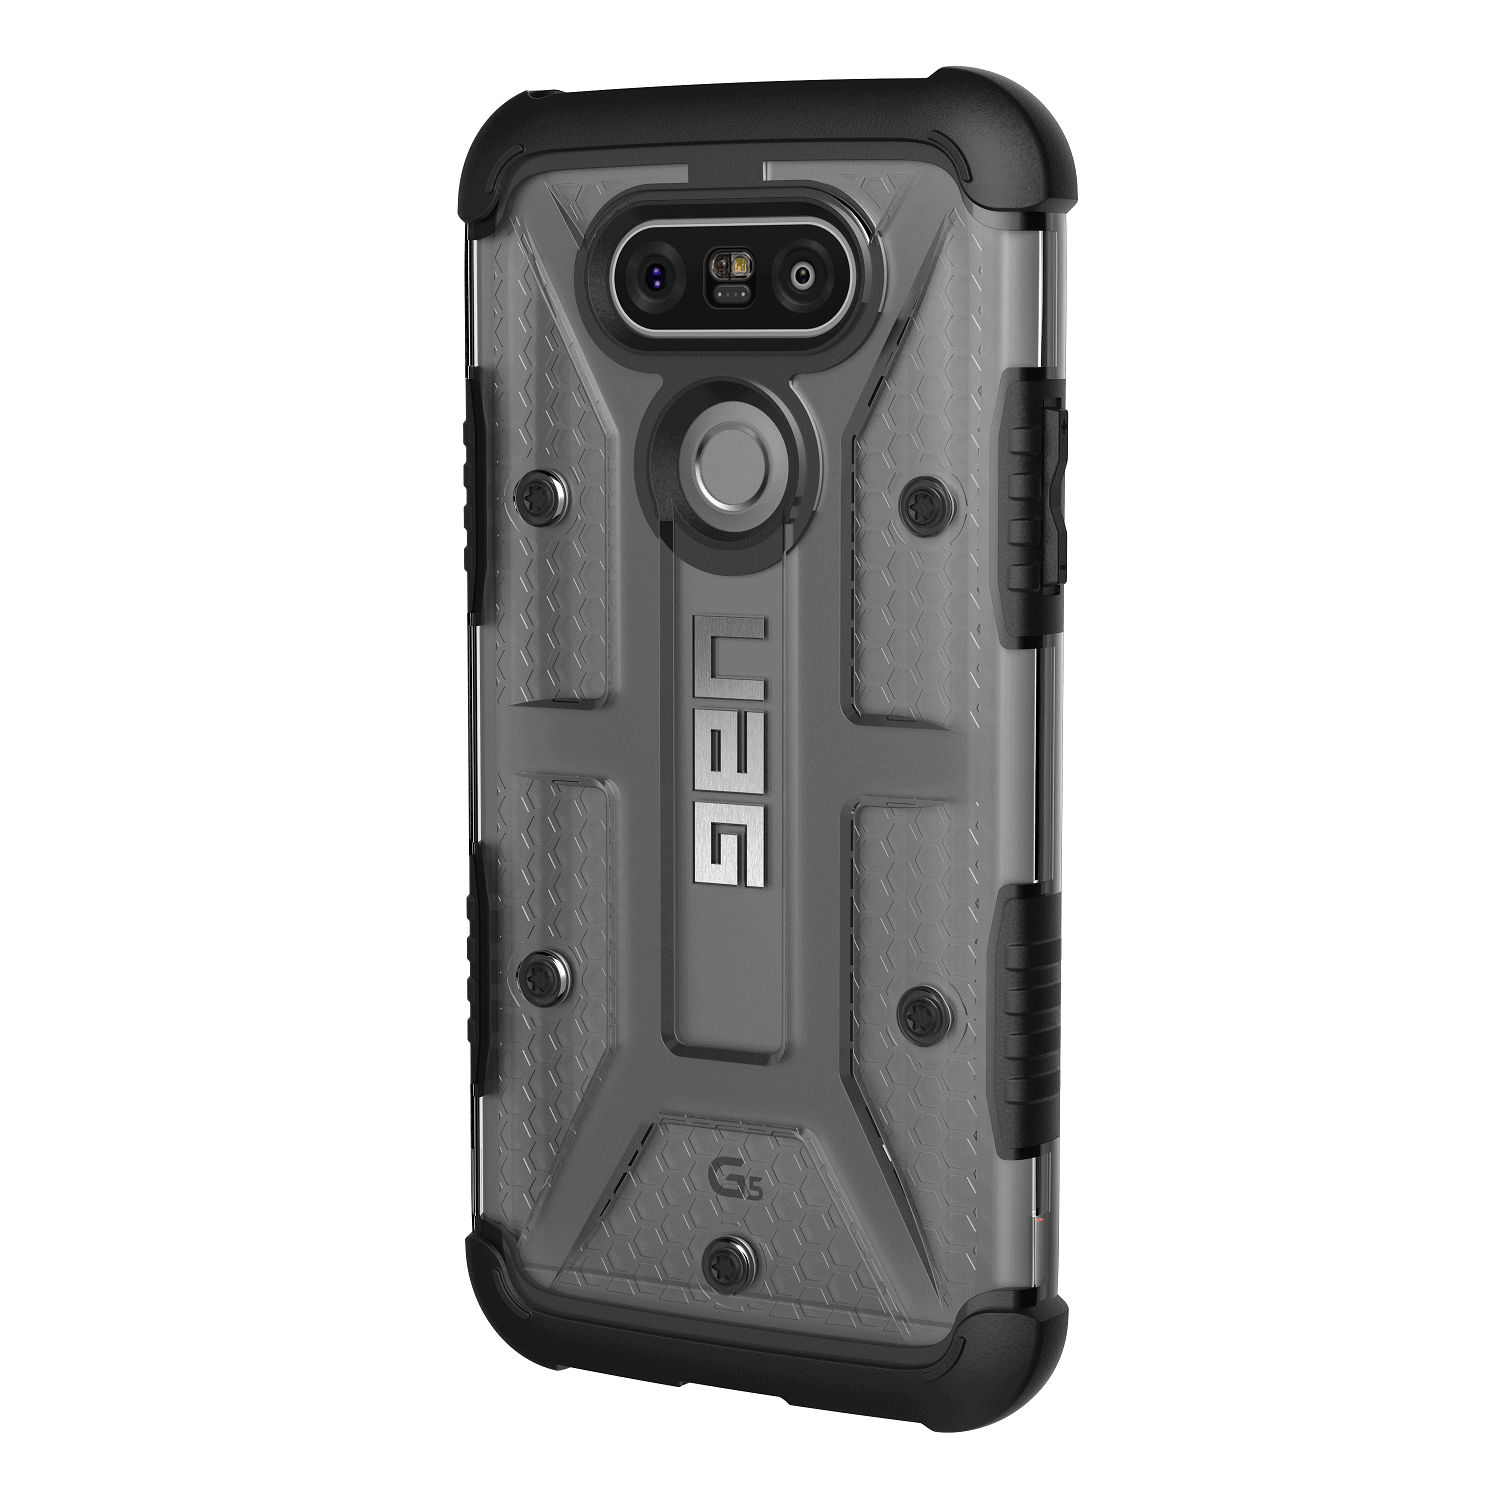 Galaxy s6 cases shop samsung cases online uag urban armor gear - Urban Armor Gear Launches Drop Tested Cases For Lg G5